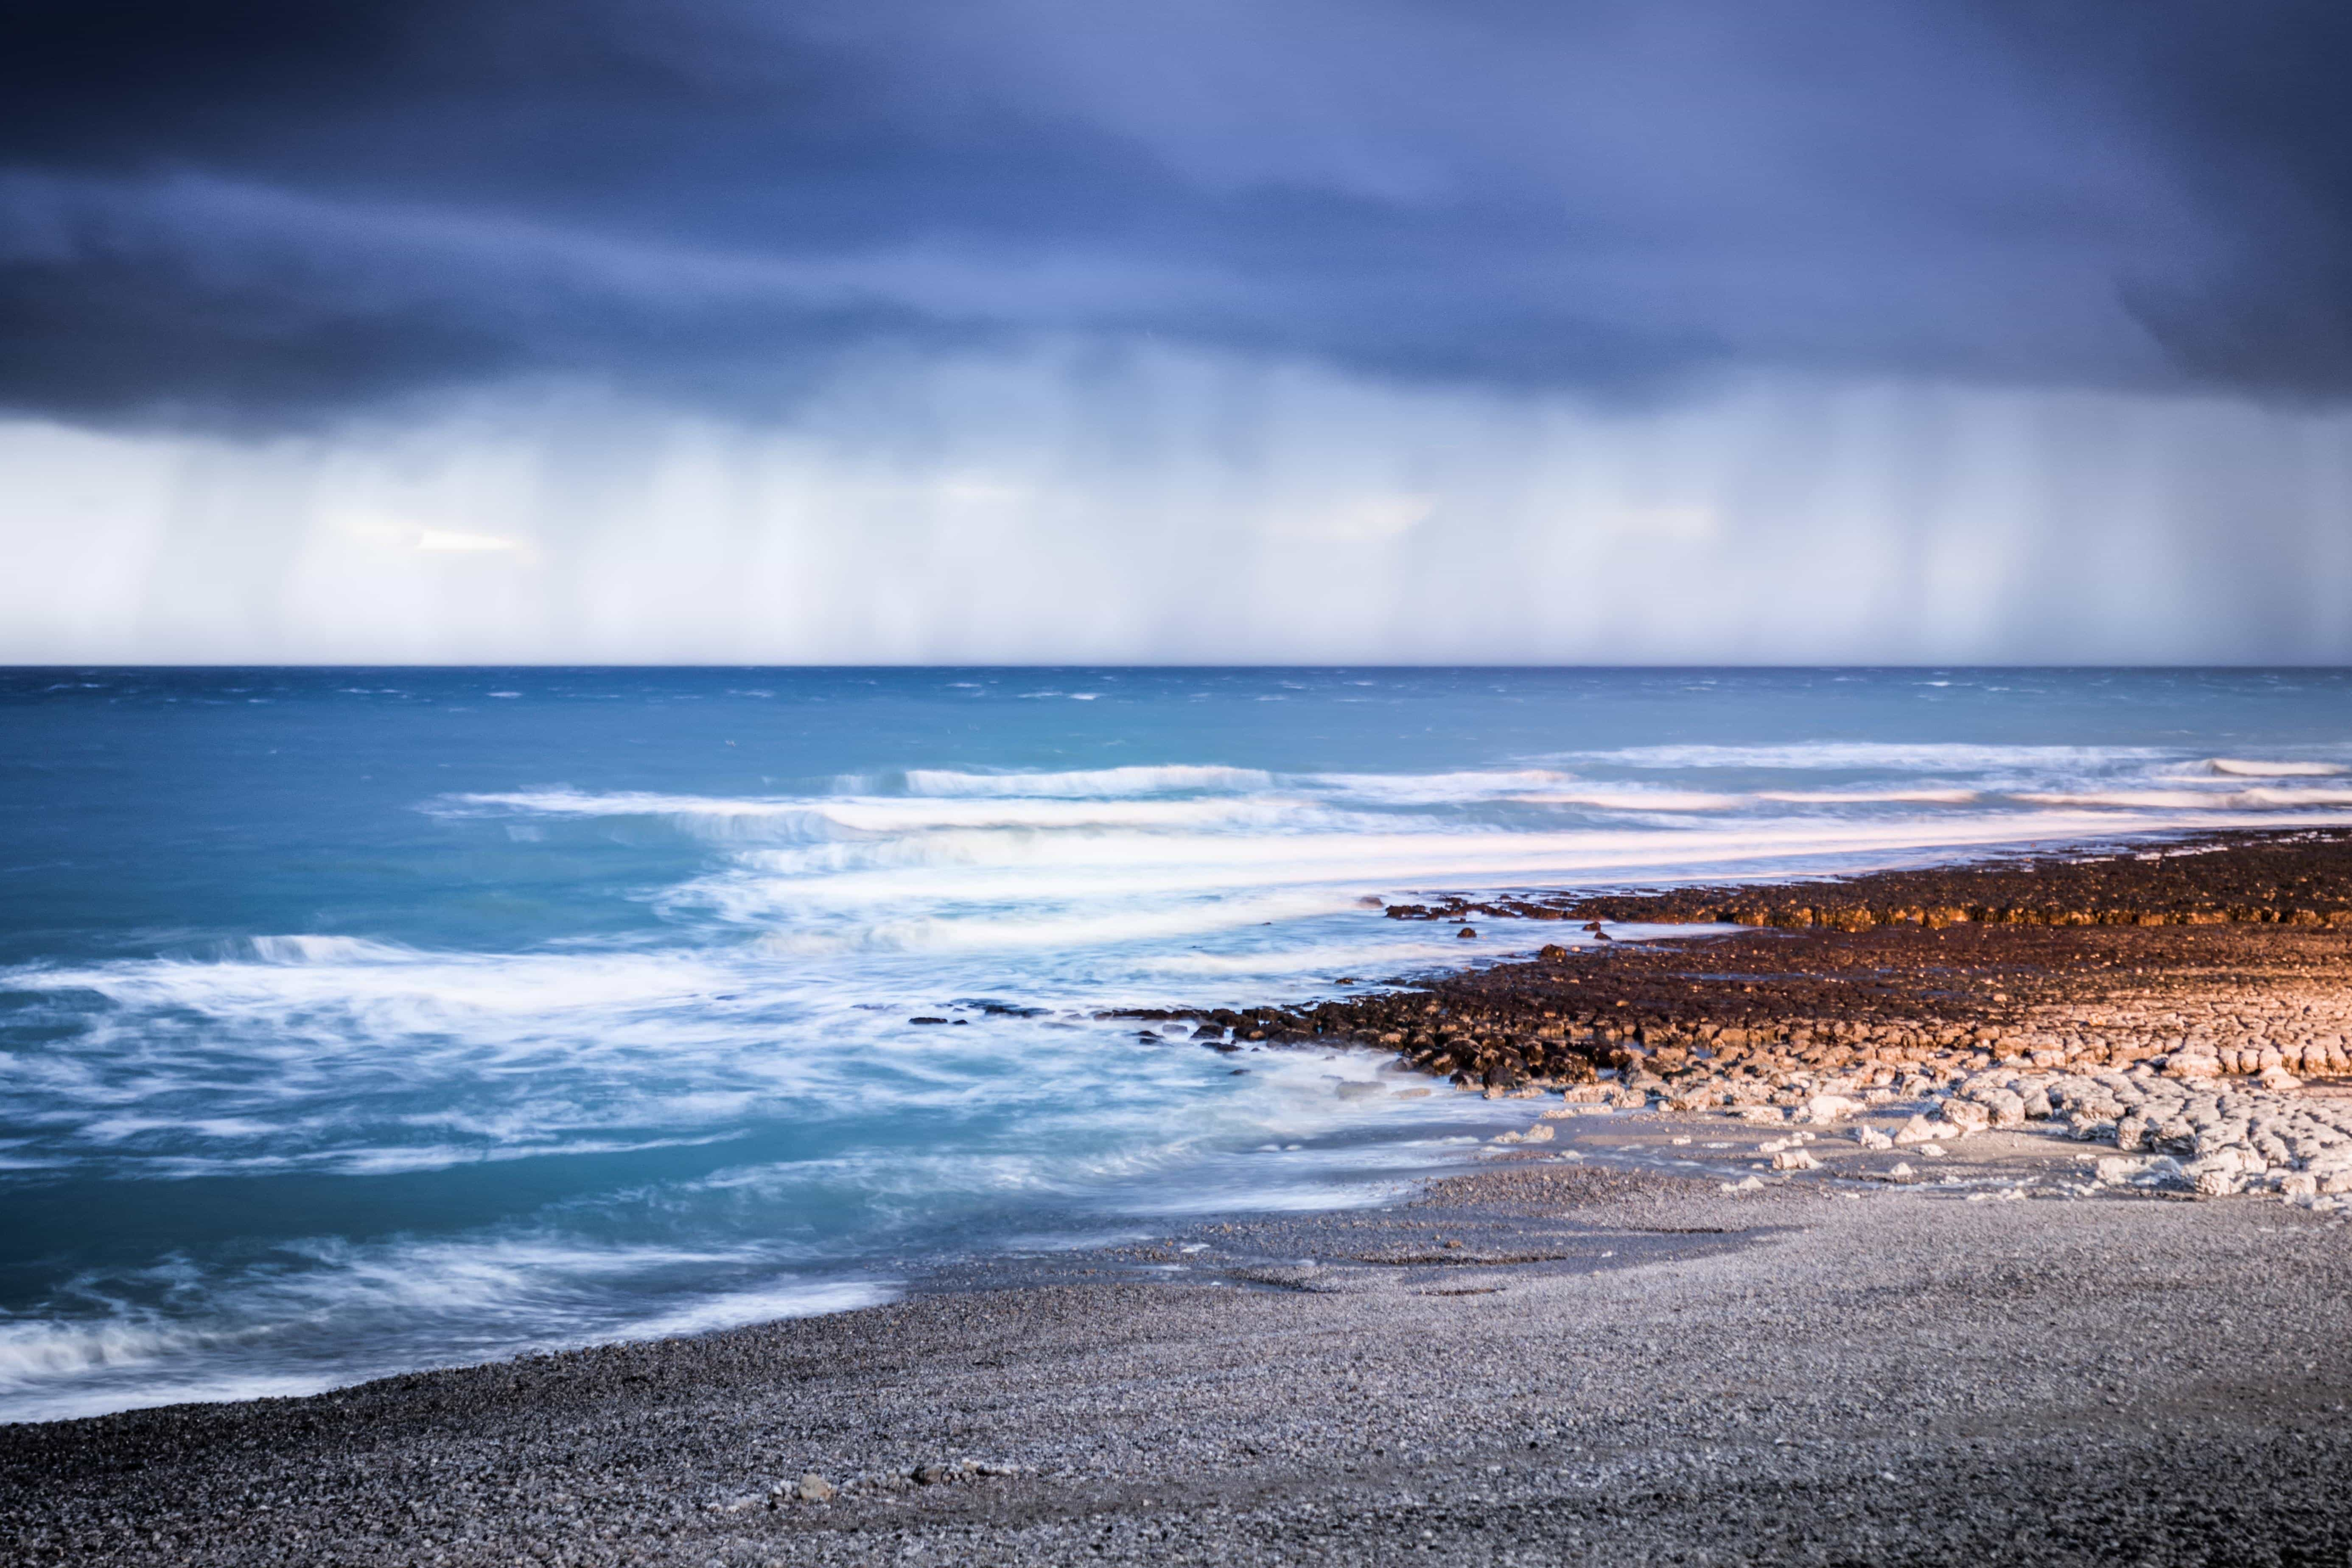 Beach And Ocean Storm: Free Picture: Water, Sea, Beach, Cloud, Storm, Landscape